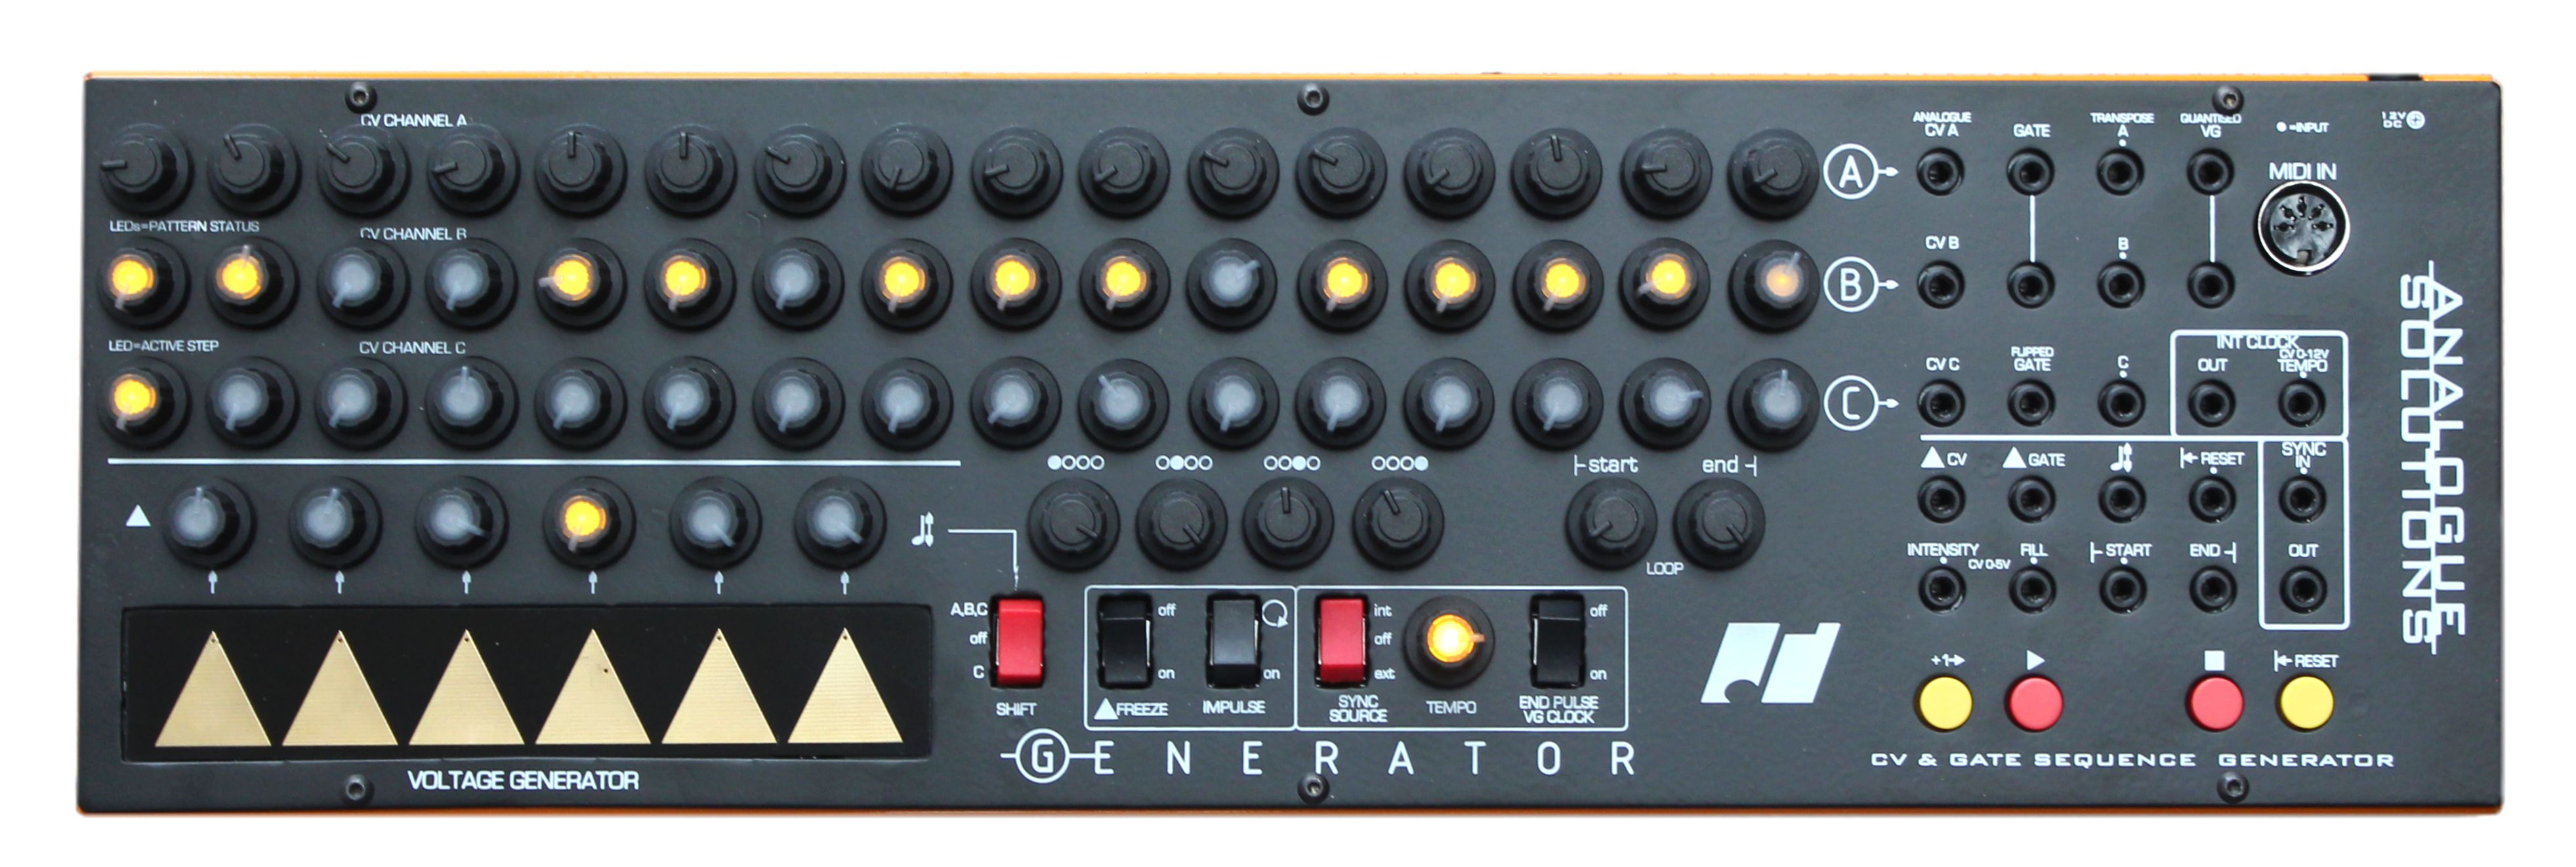 News: Analogue Solutions mit flexiblem Step-Sequencer Generator